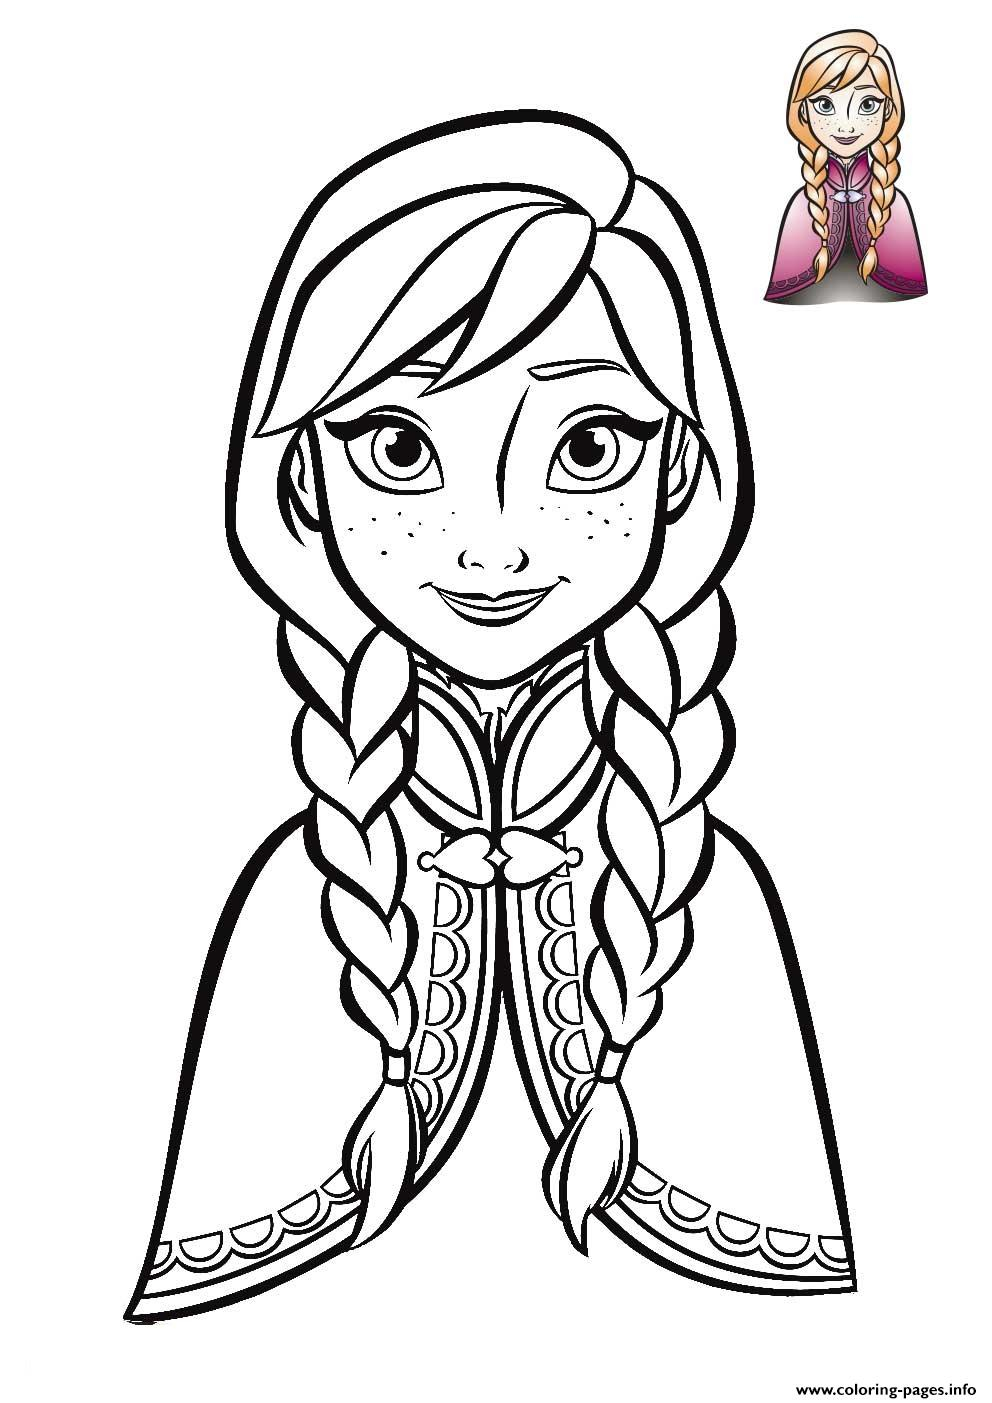 Anna Coloring Pages Anna Frozen Face 2018 Coloring Pages Printable